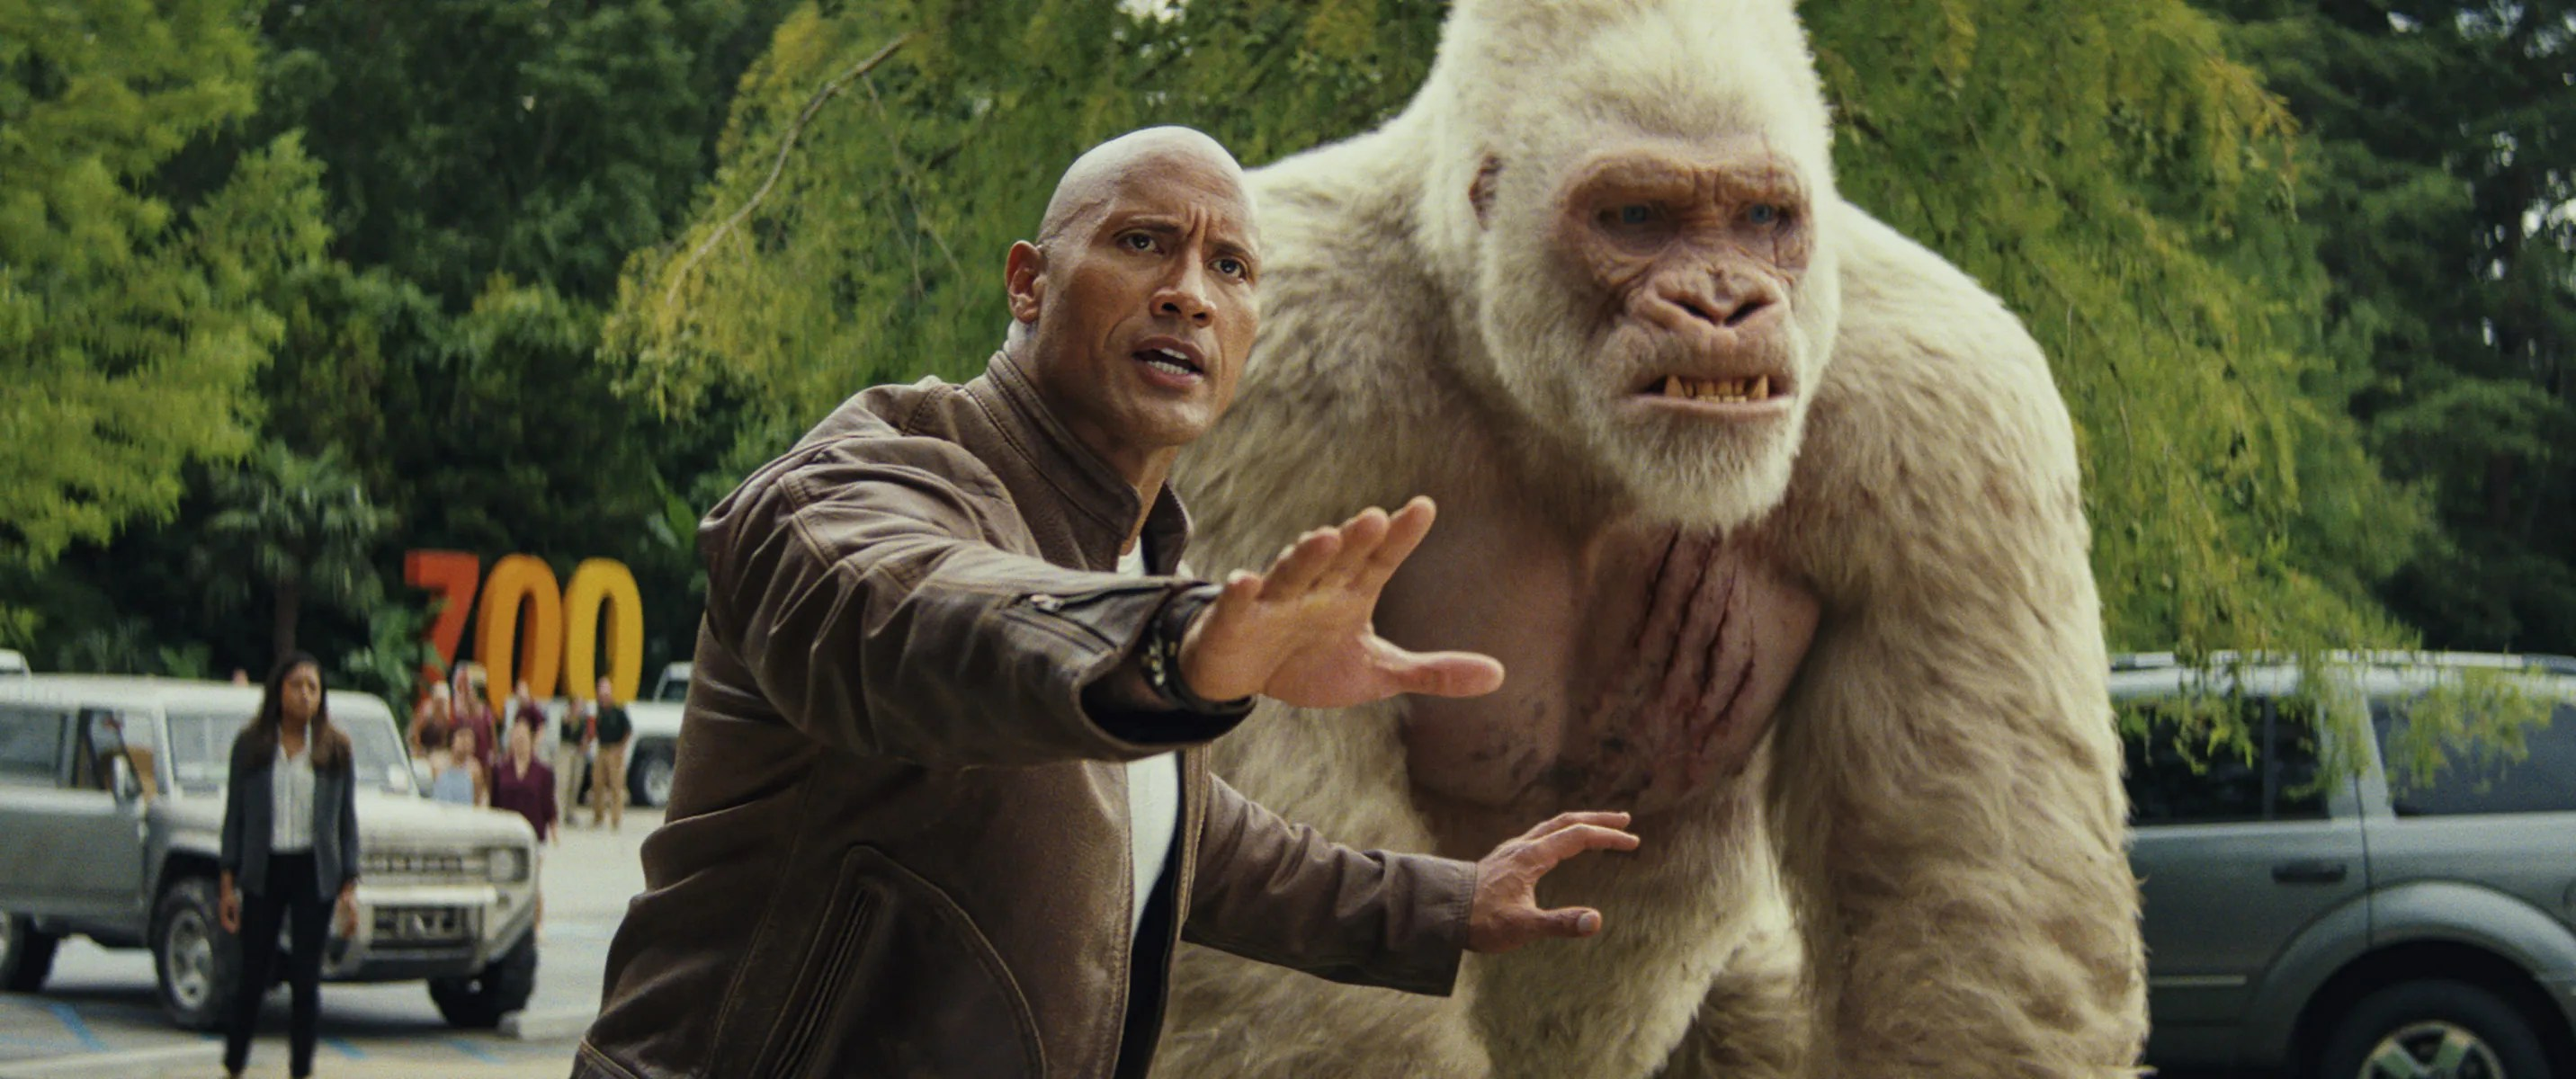 Fall Walk Wallpaper Rampage Review Dwayne Johnson Upstaged By A Giant Gorilla